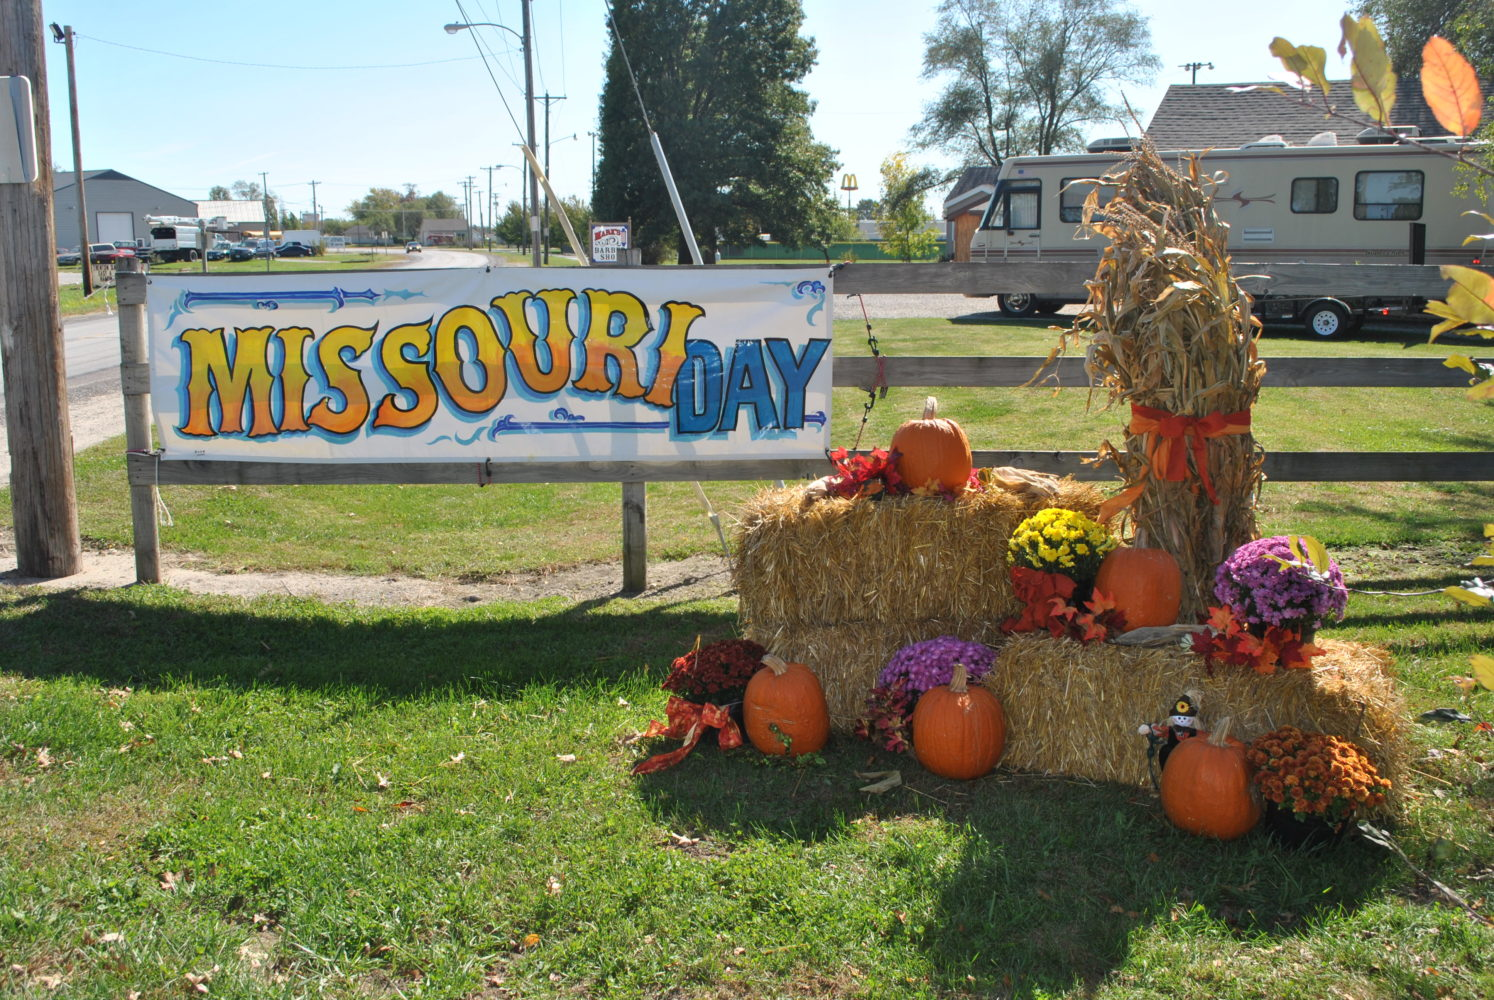 Missouri Day is Underway in Trenton